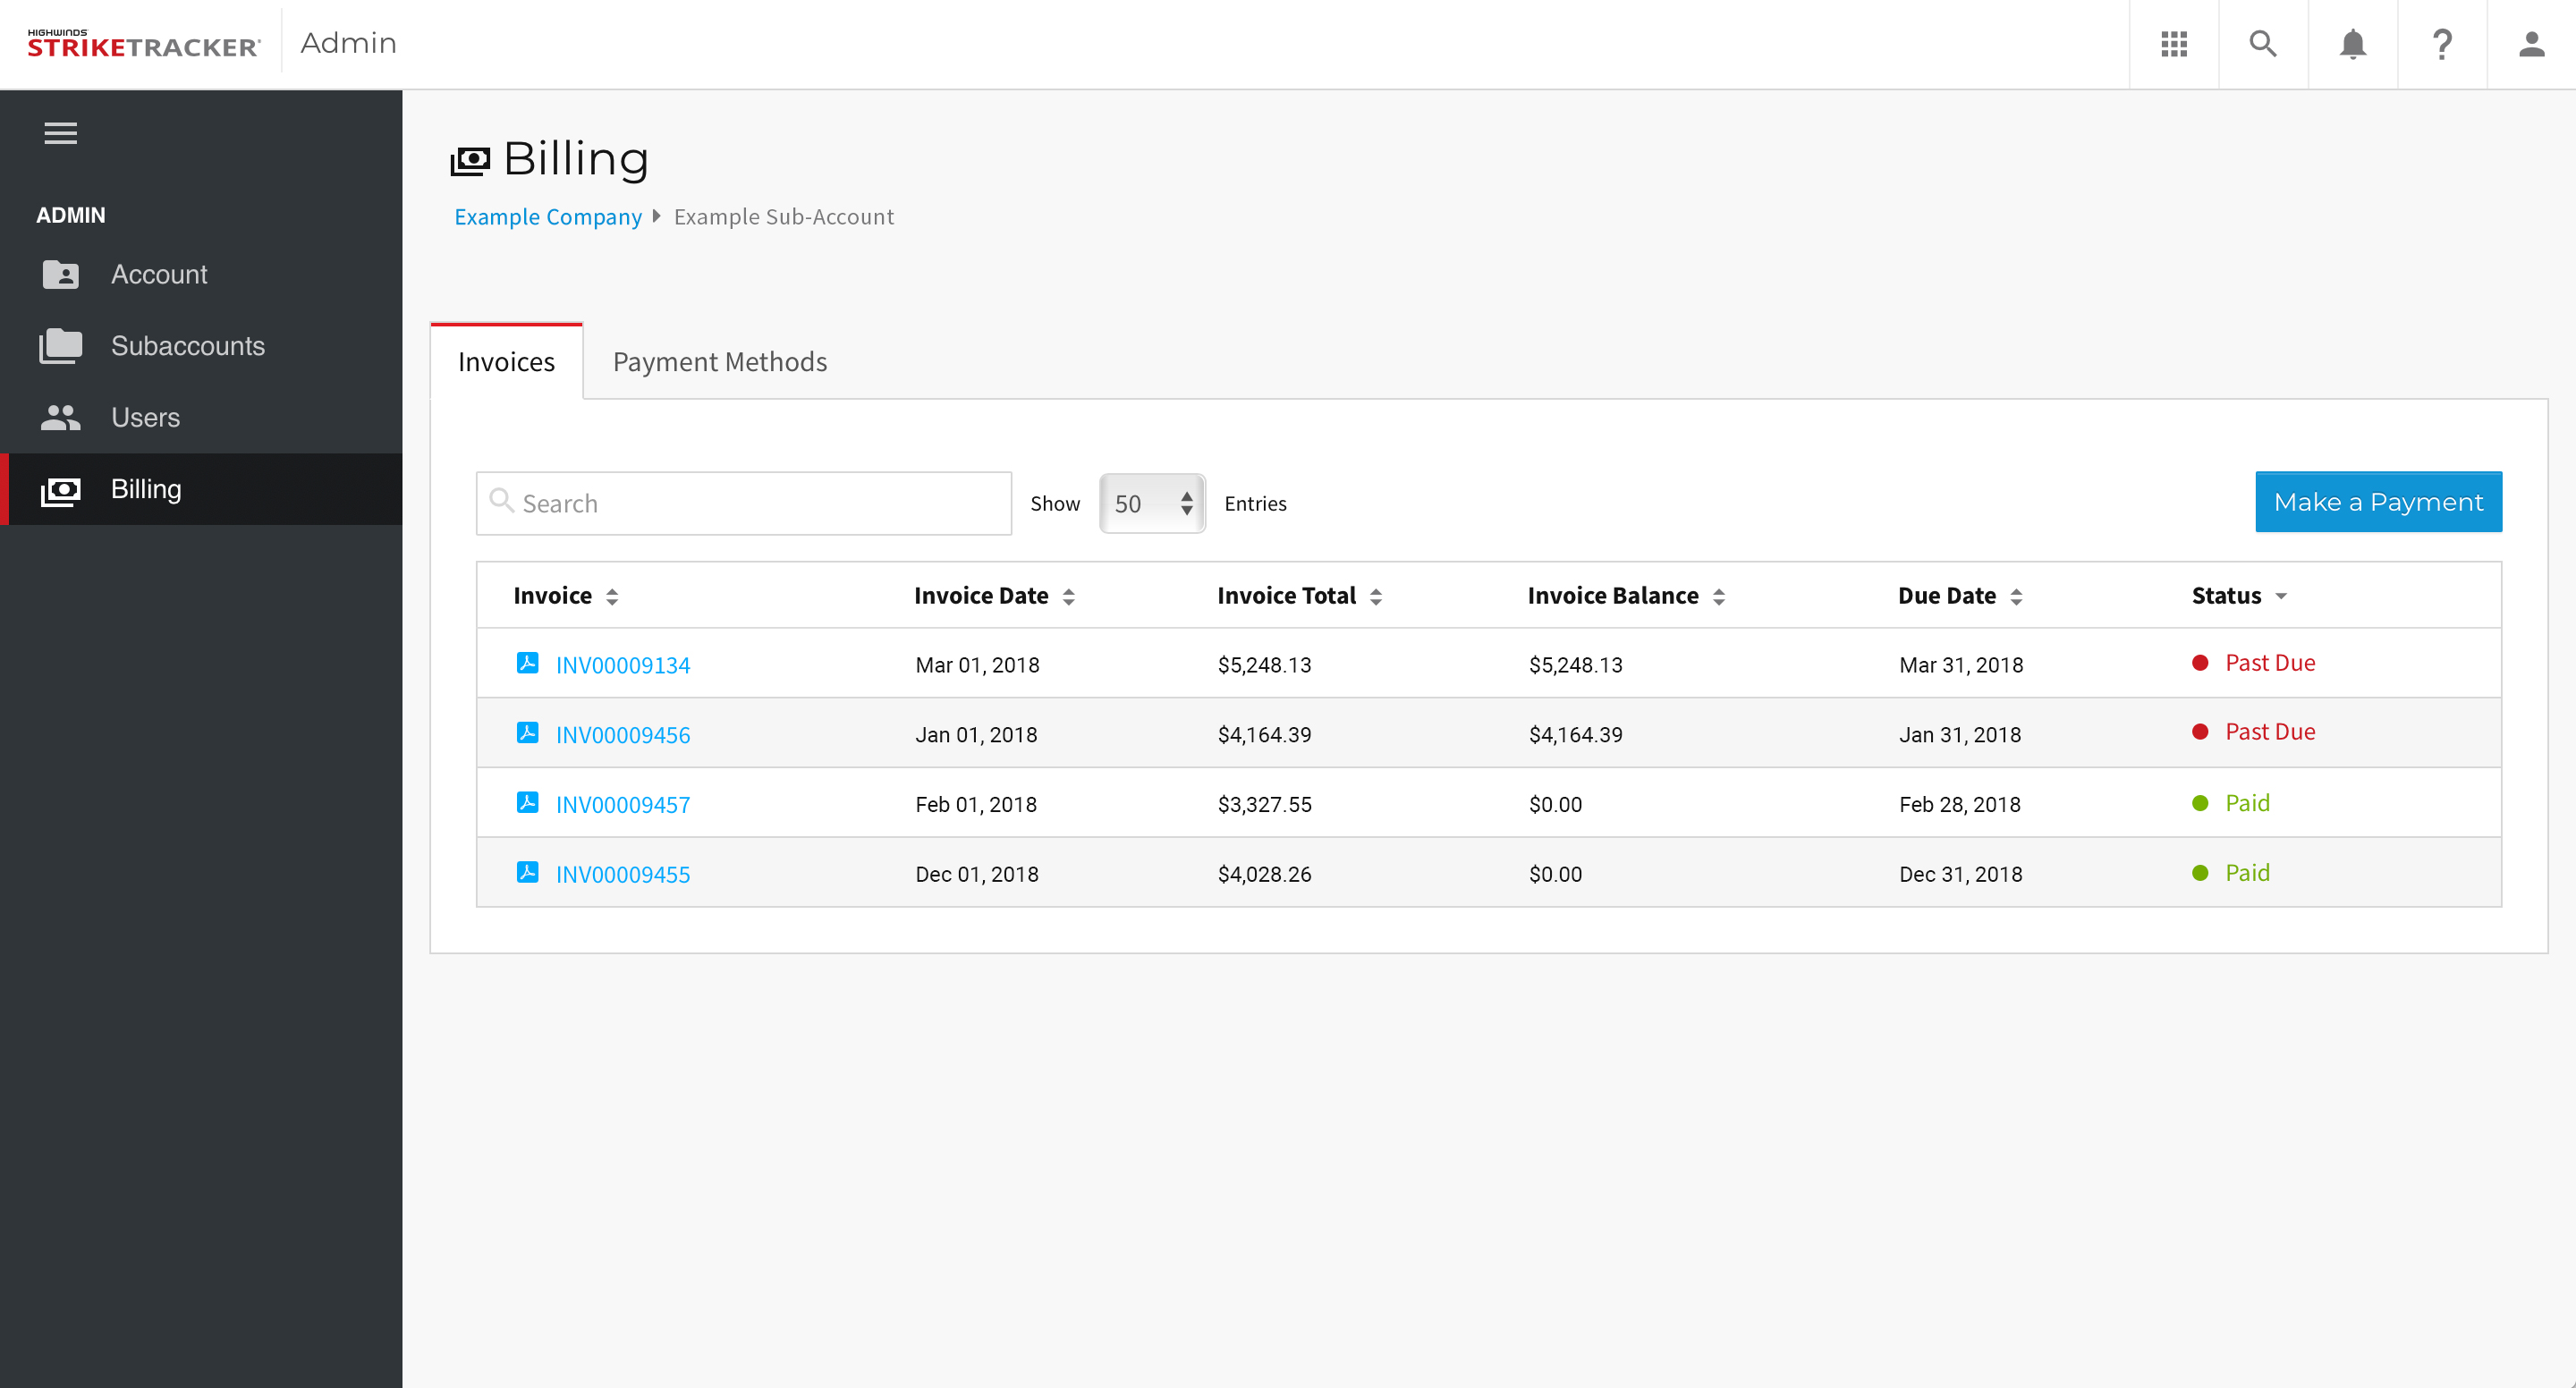 StrikeTracker - Billing - Invoices